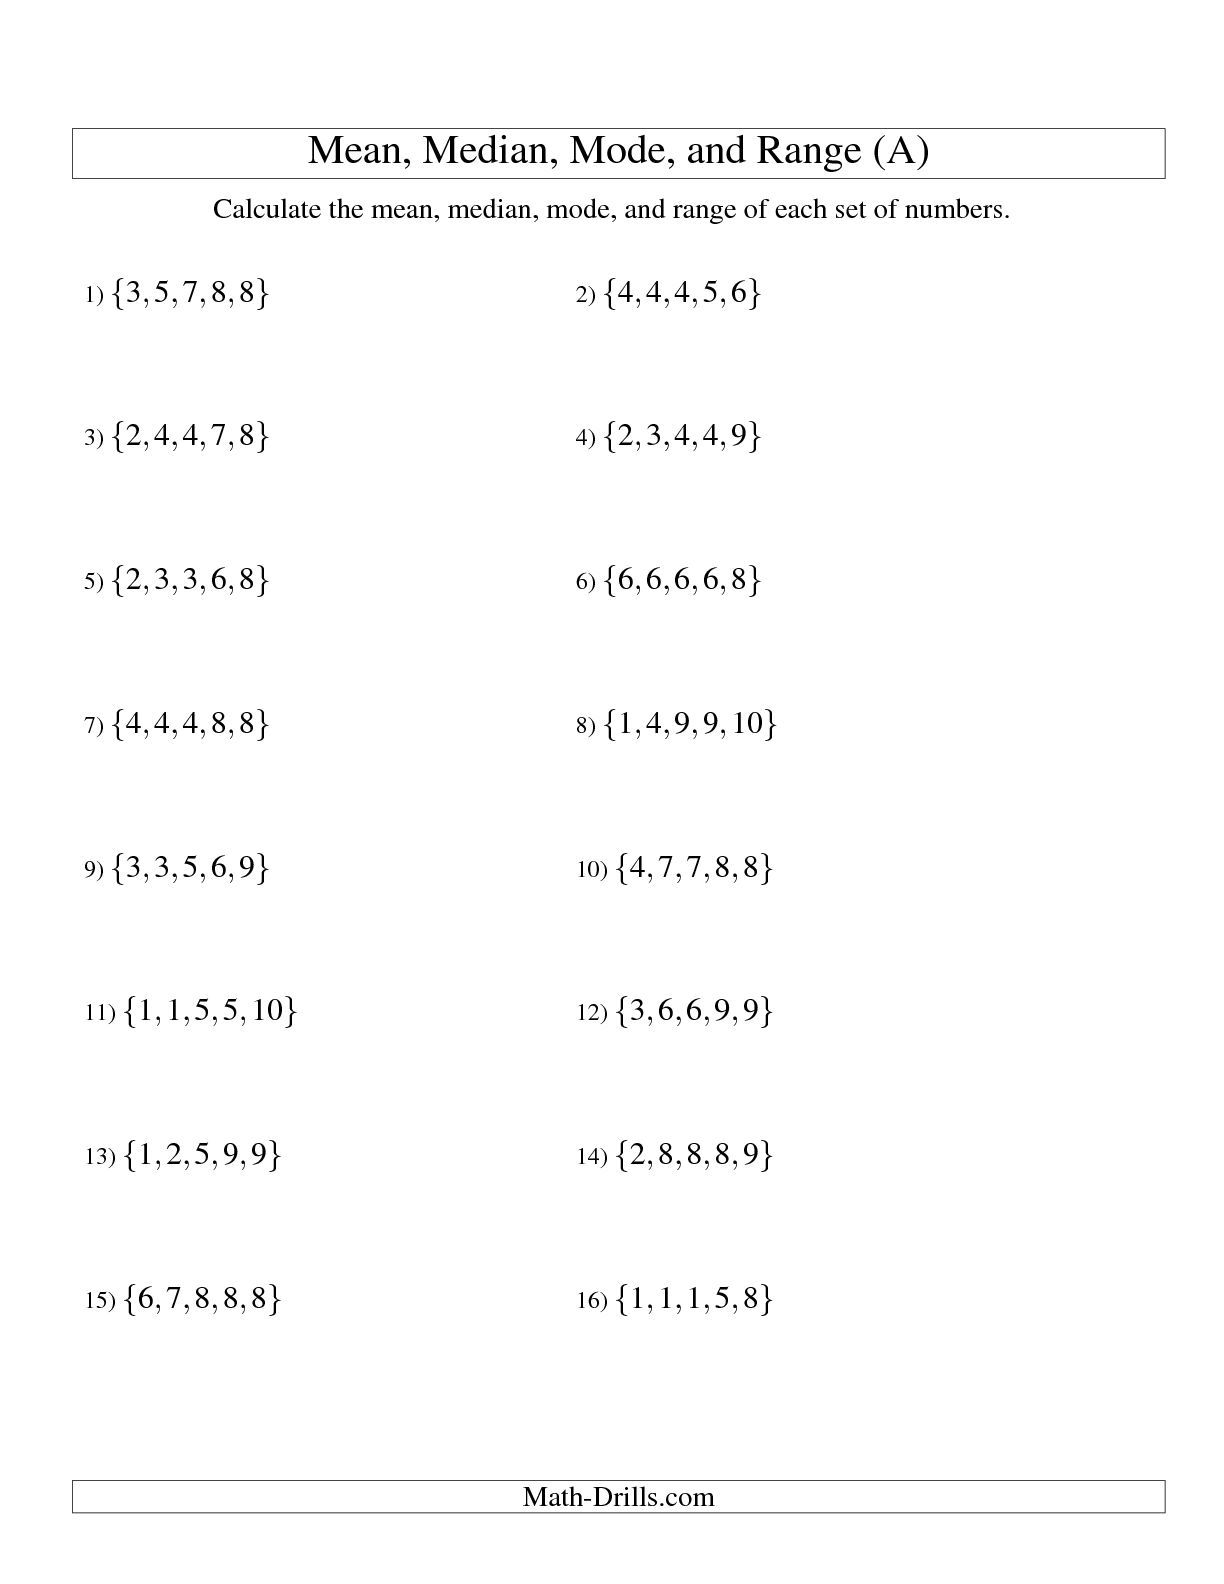 worksheet Complements Of 10 Worksheets new 2012 10 16 addition worksheet adding complements of 100 d we also added options for 1000 9